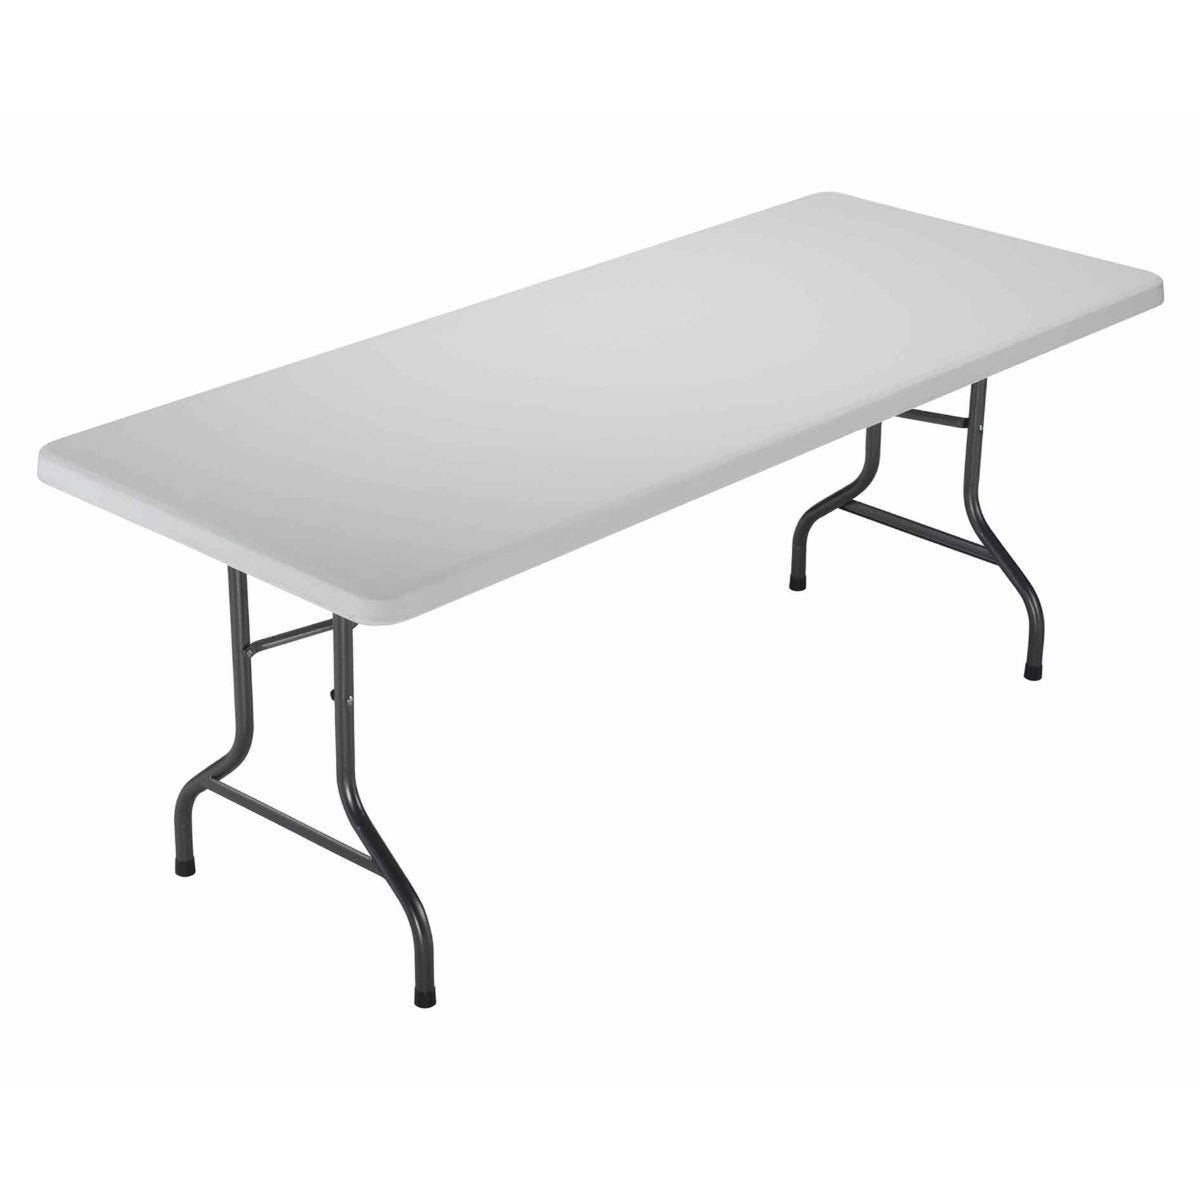 Tc Office Morph Rectangular Polypropylene Folding Table 1220mm